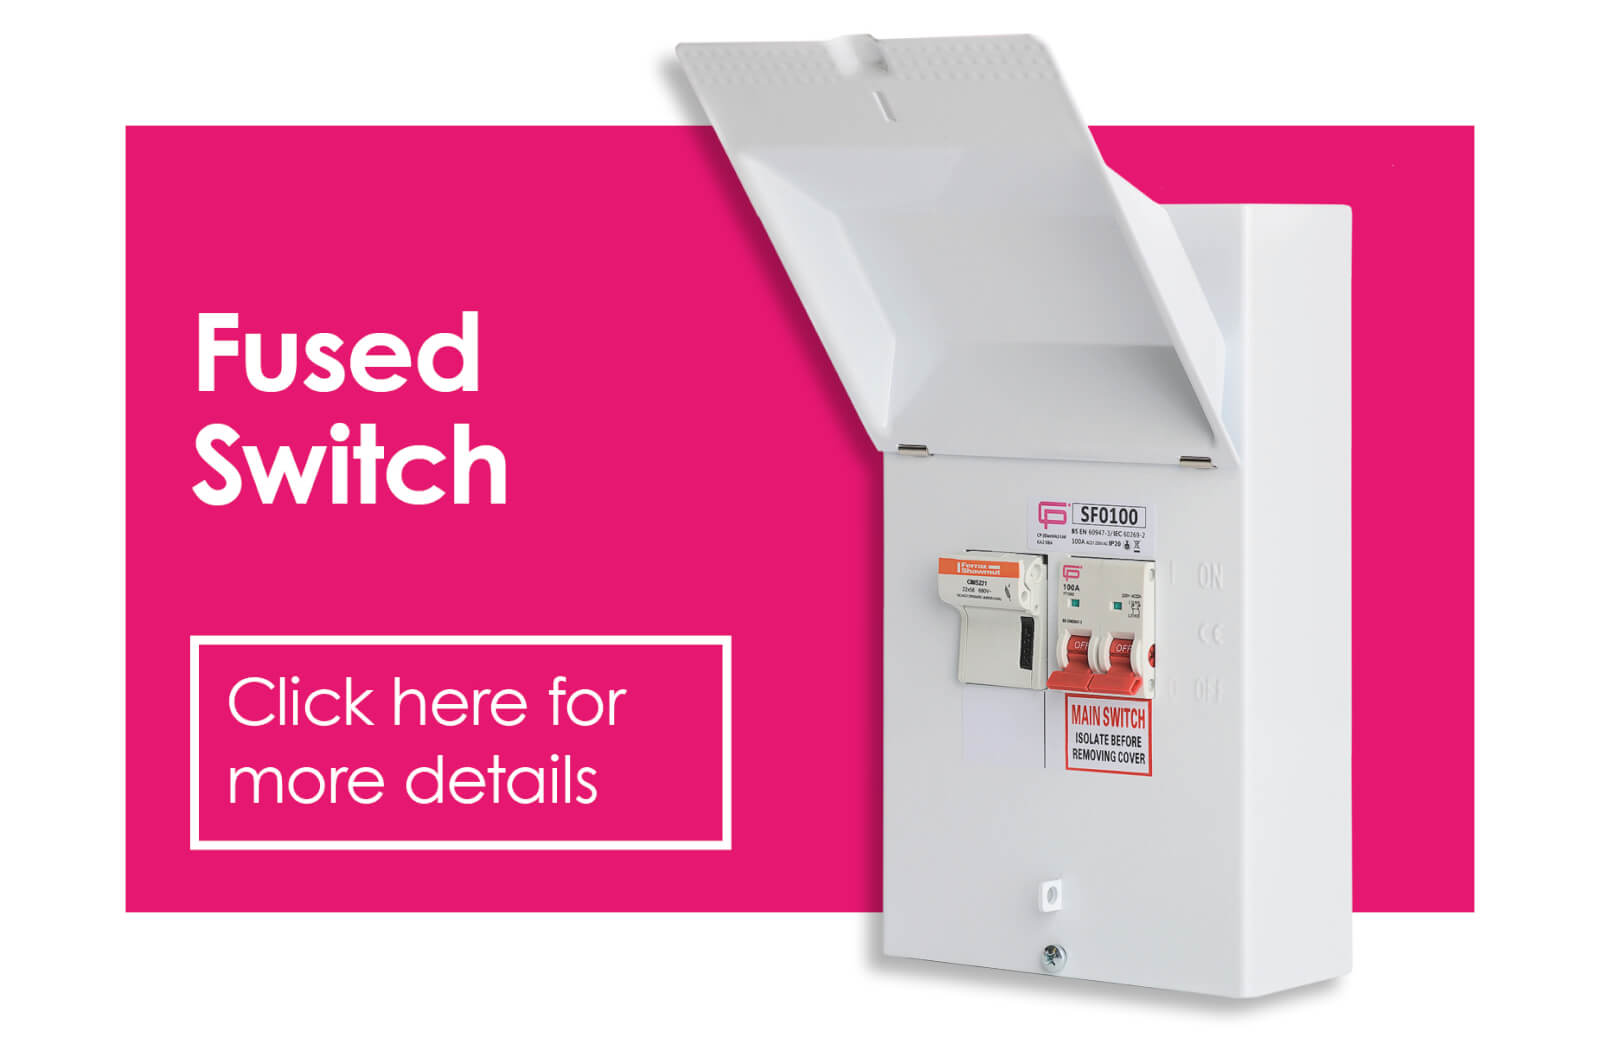 FUSEBOX Fused Switch